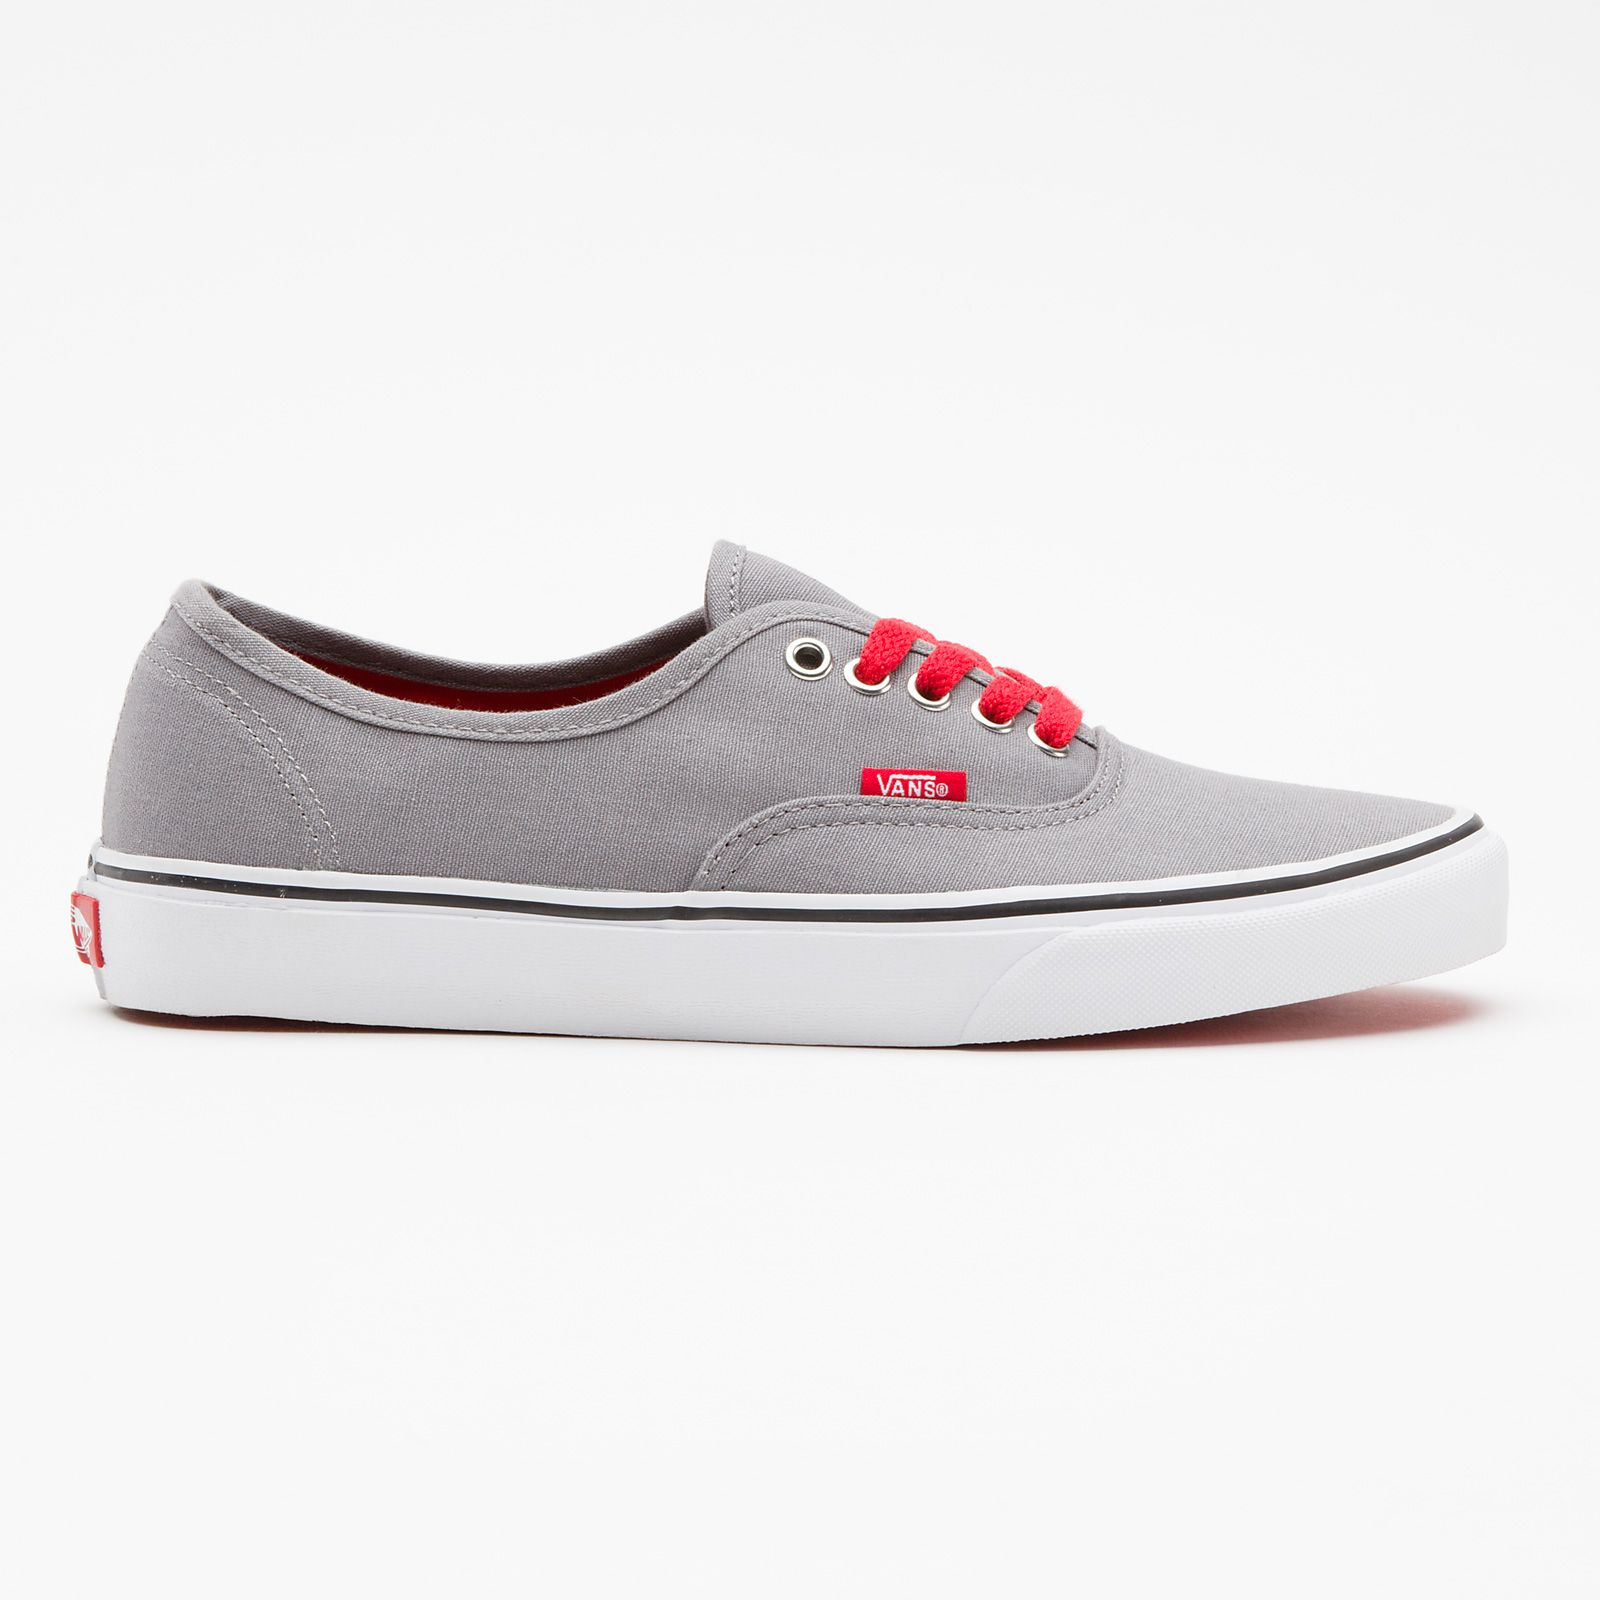 Vans Authentic Washed 'Rio Red' | SneakerFiles